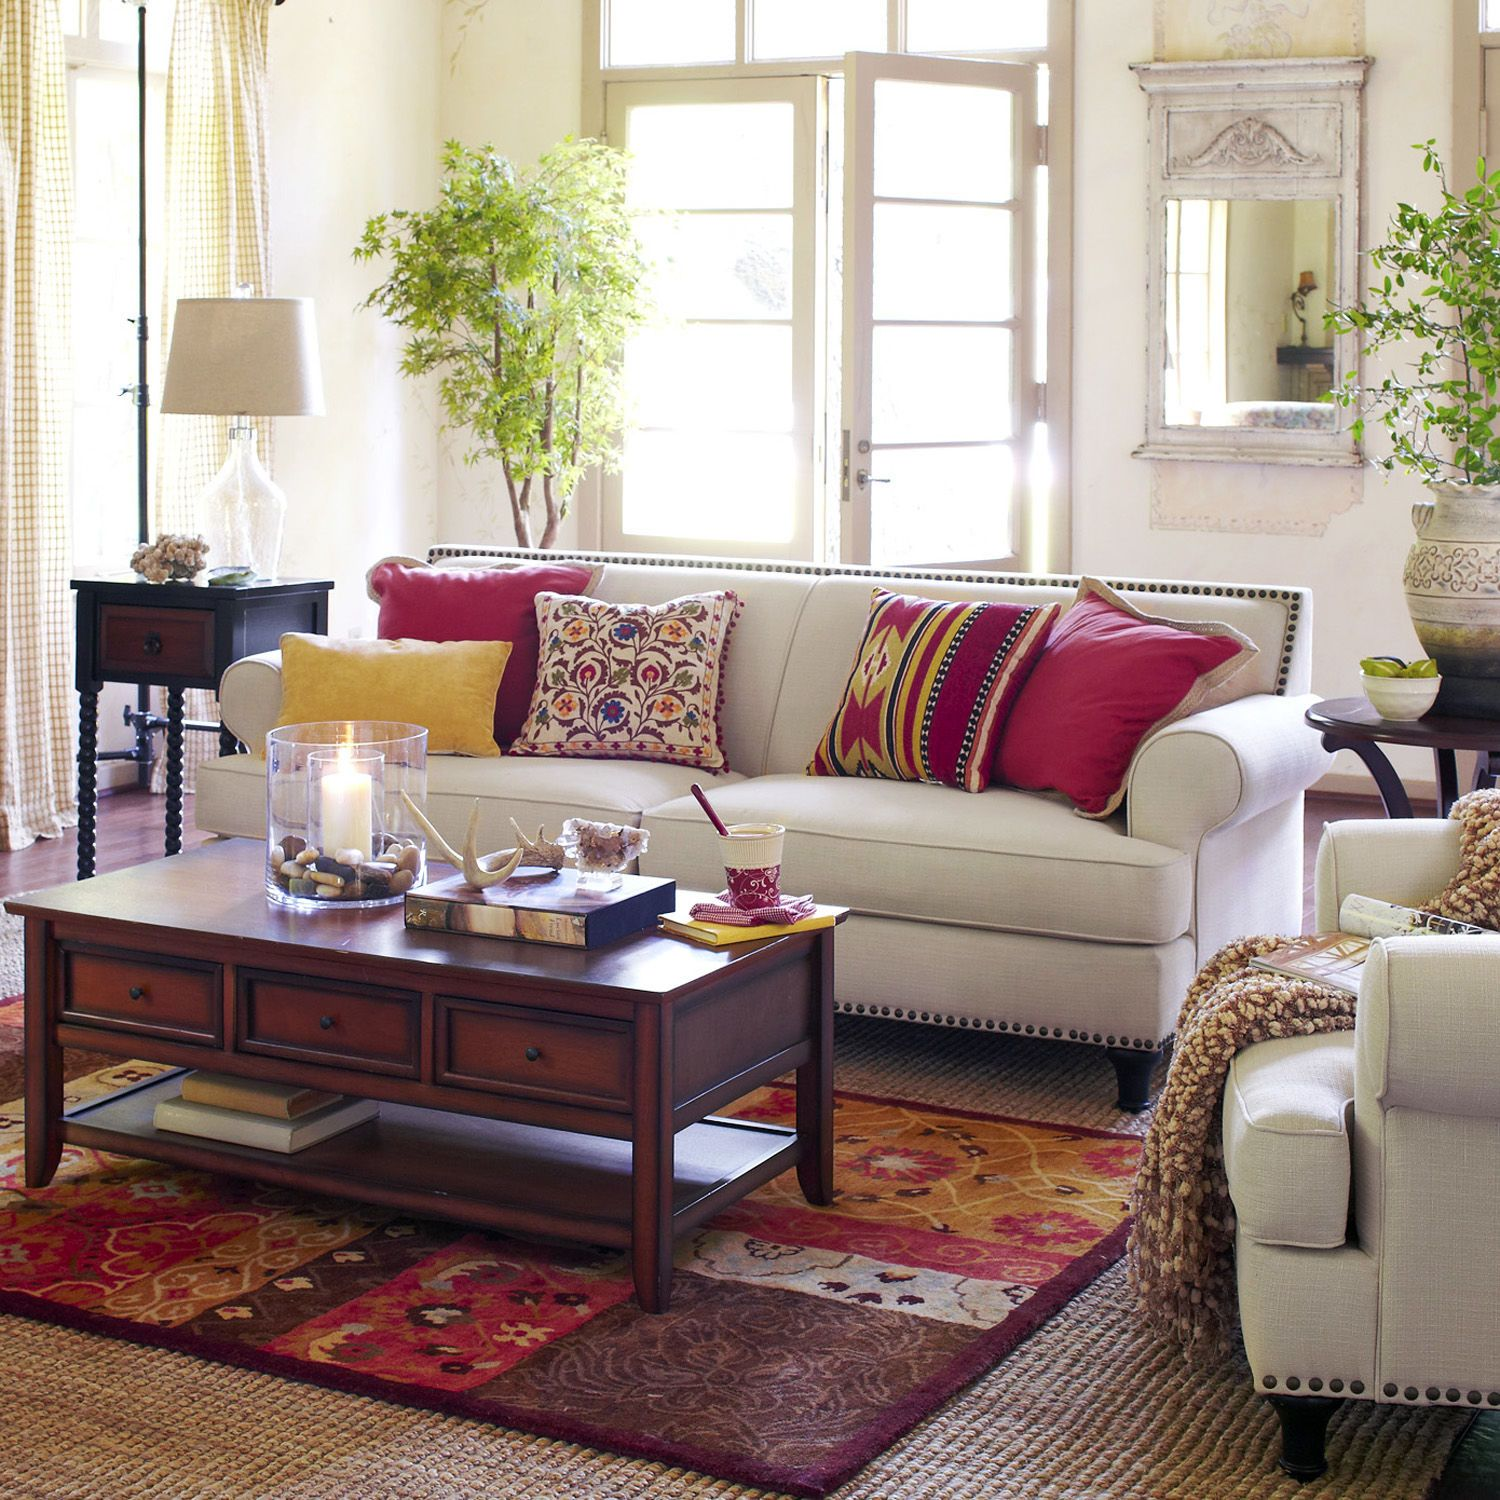 pier 1 living room rugs%0A This one is comfortable and firm  From Pier    Carmen Sofa  Ecru